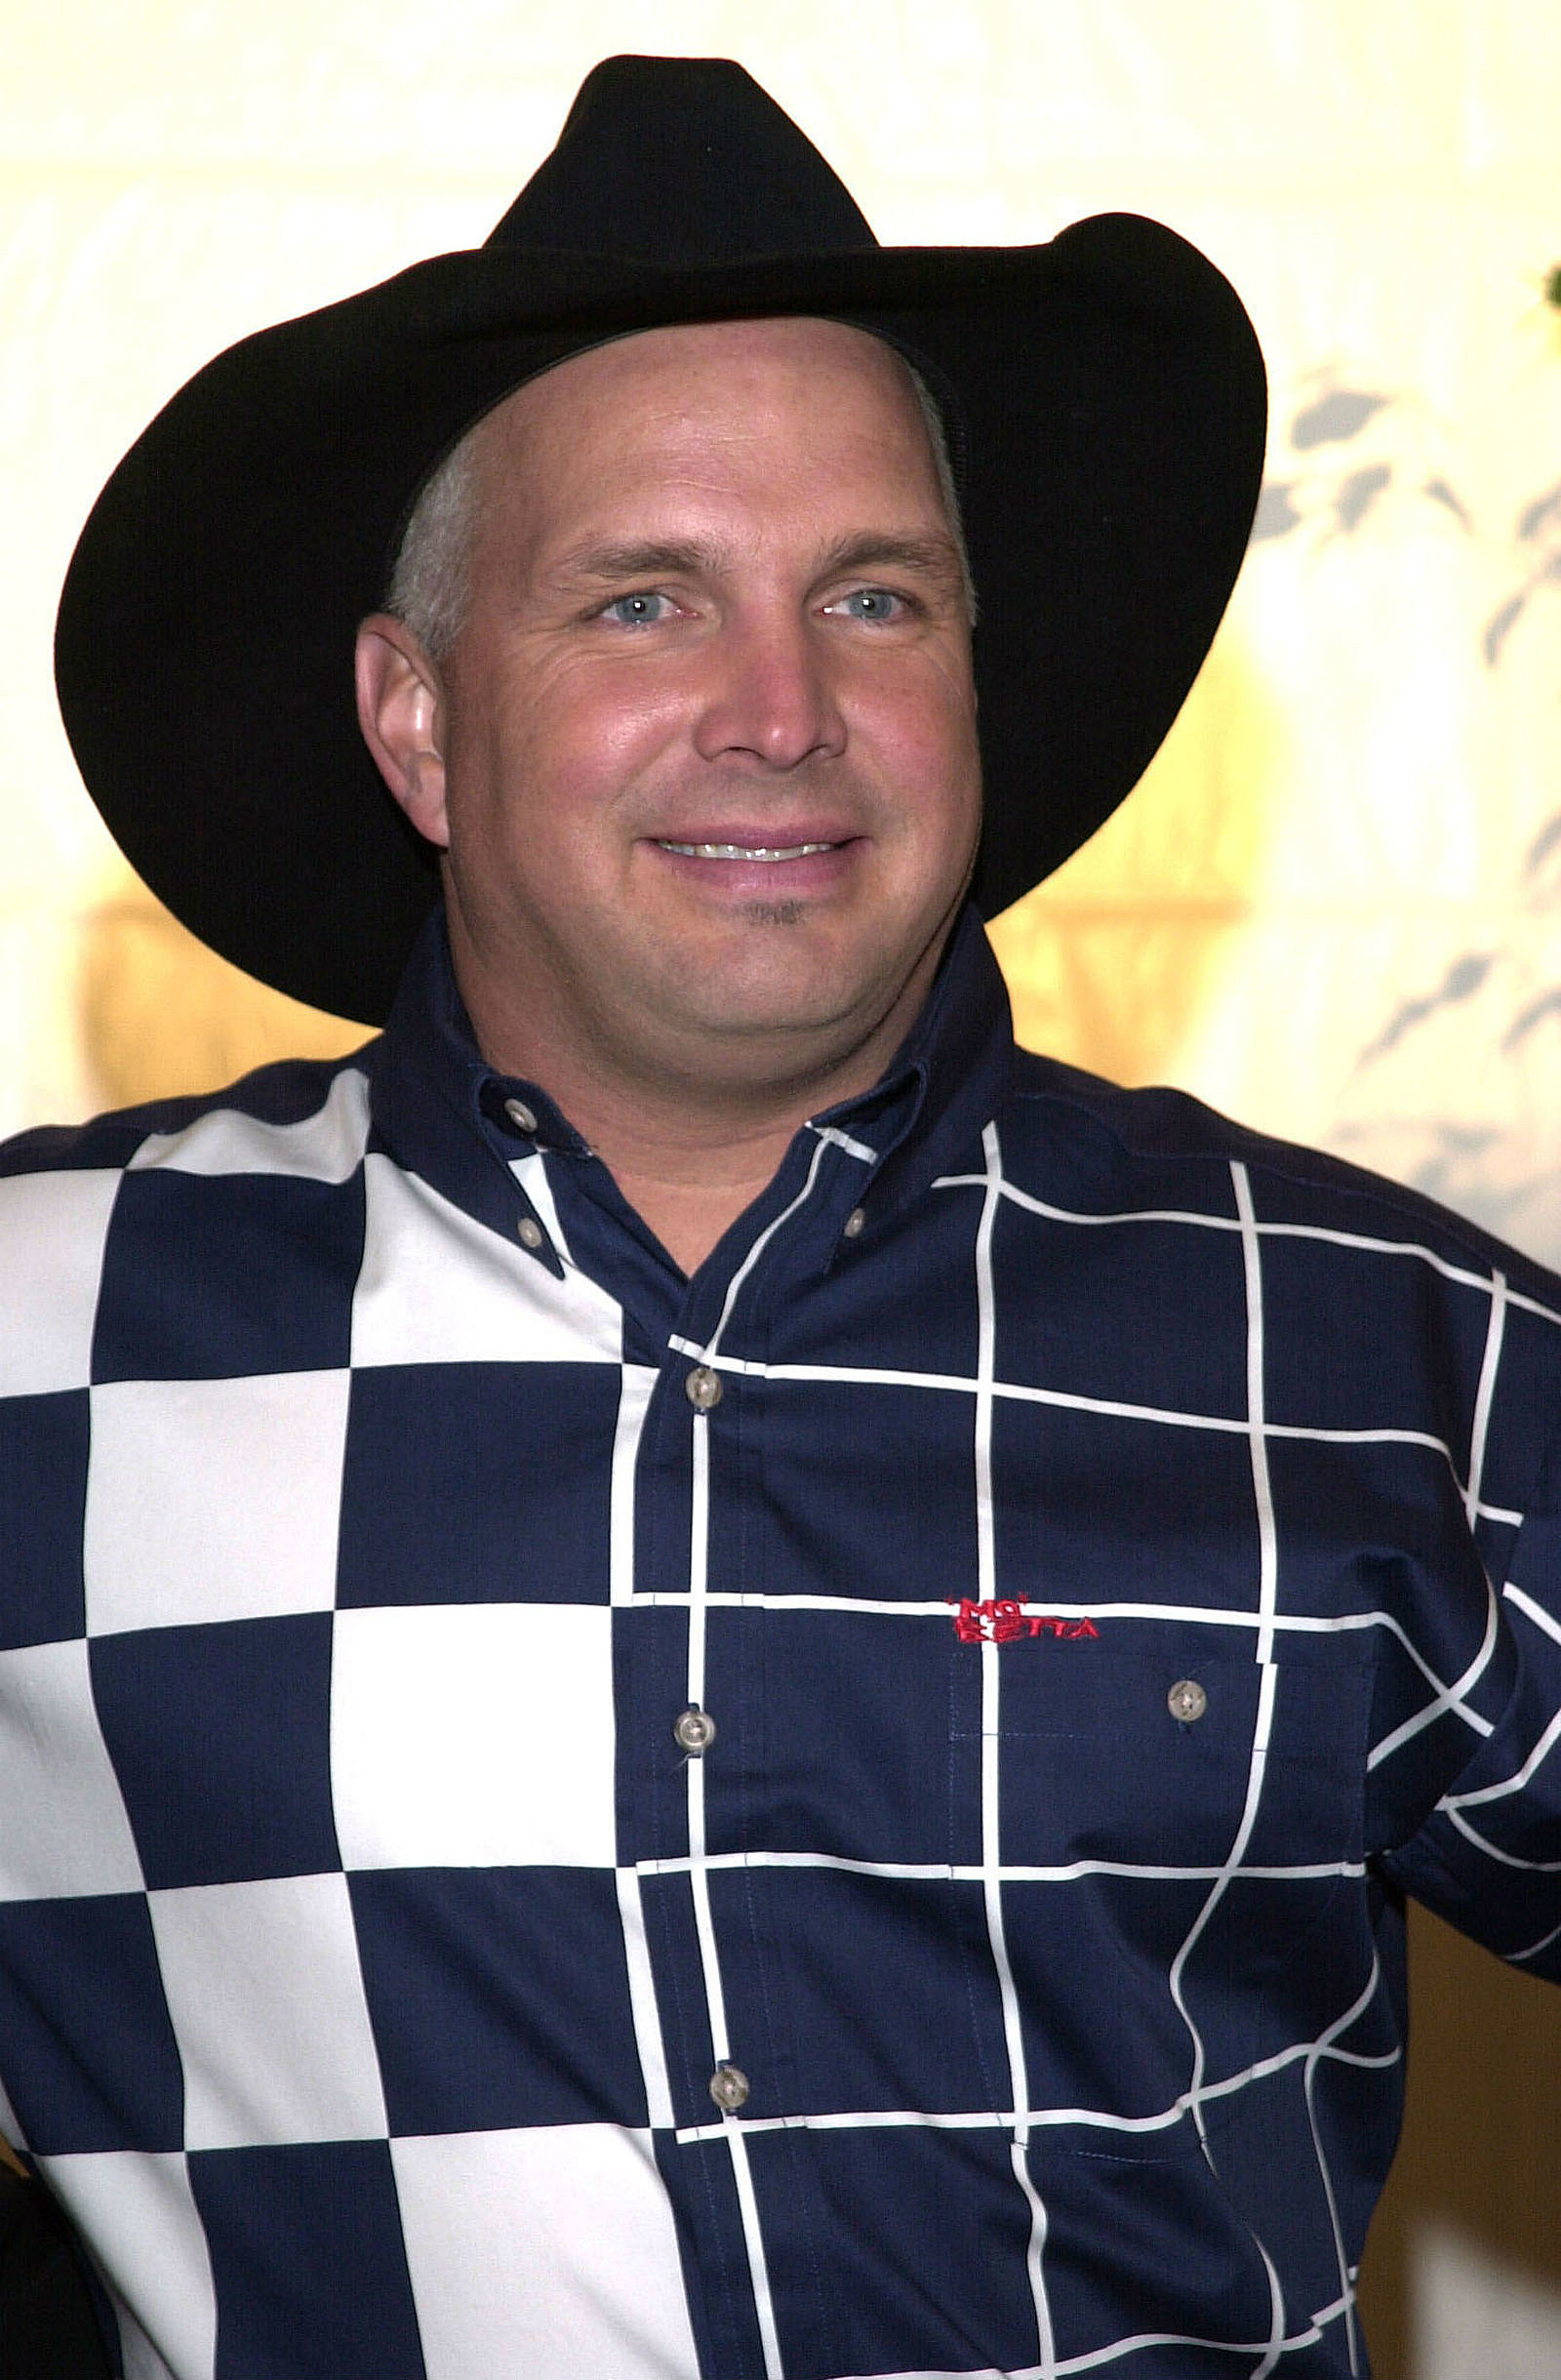 garth brooks singer